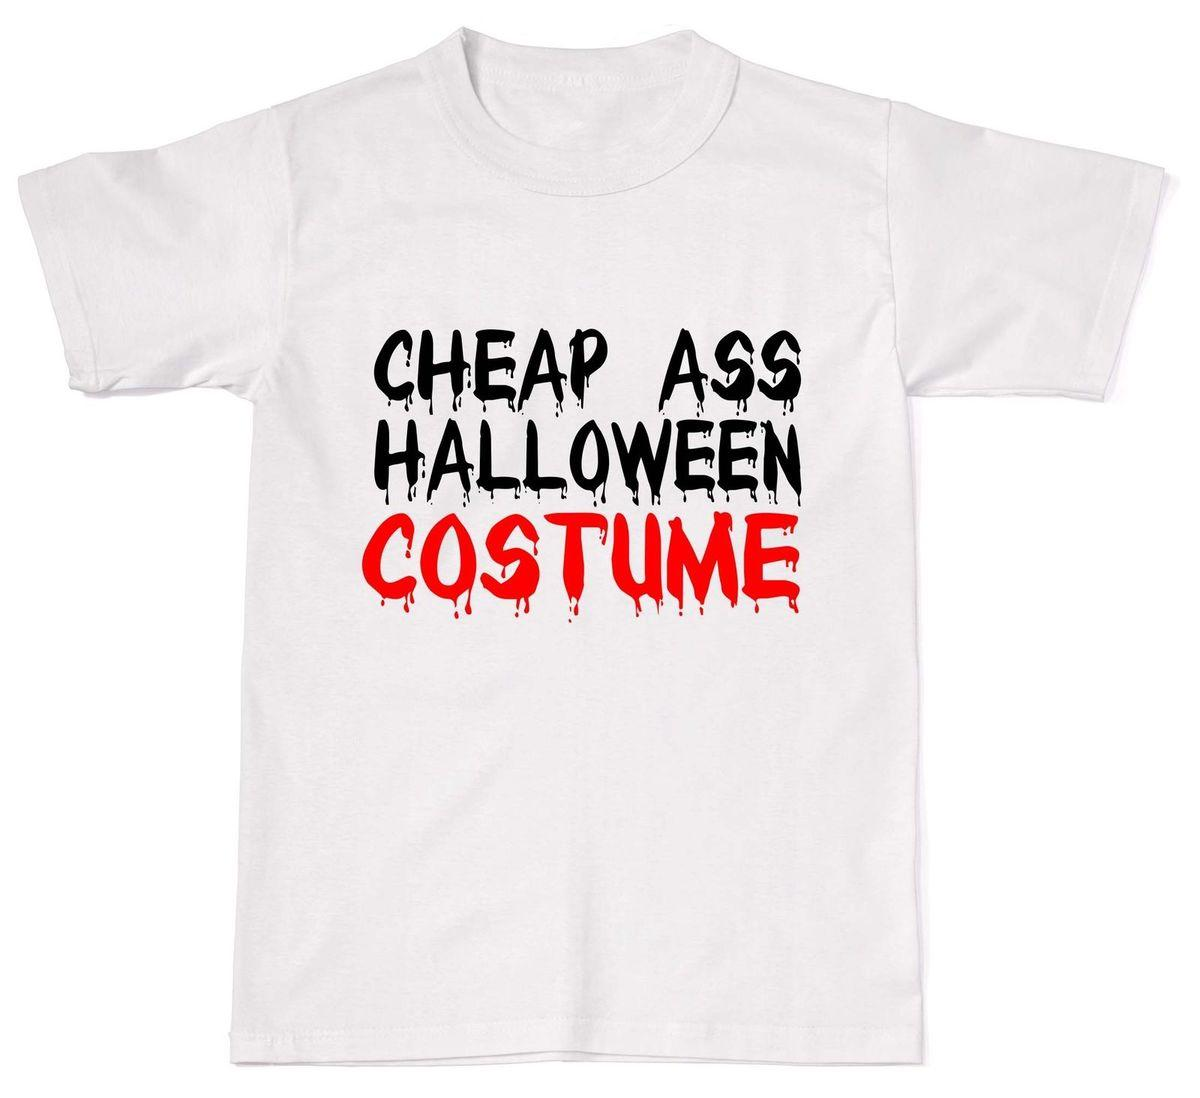 d79f7be1570f Design T Shirts Casual Cool Cheap Ass Halloween Costume Funny Outfit Humour  Cotton T Shirt T Shirt Buy Cool Shirts Ordering T Shirts From Banwanyue3,  ...